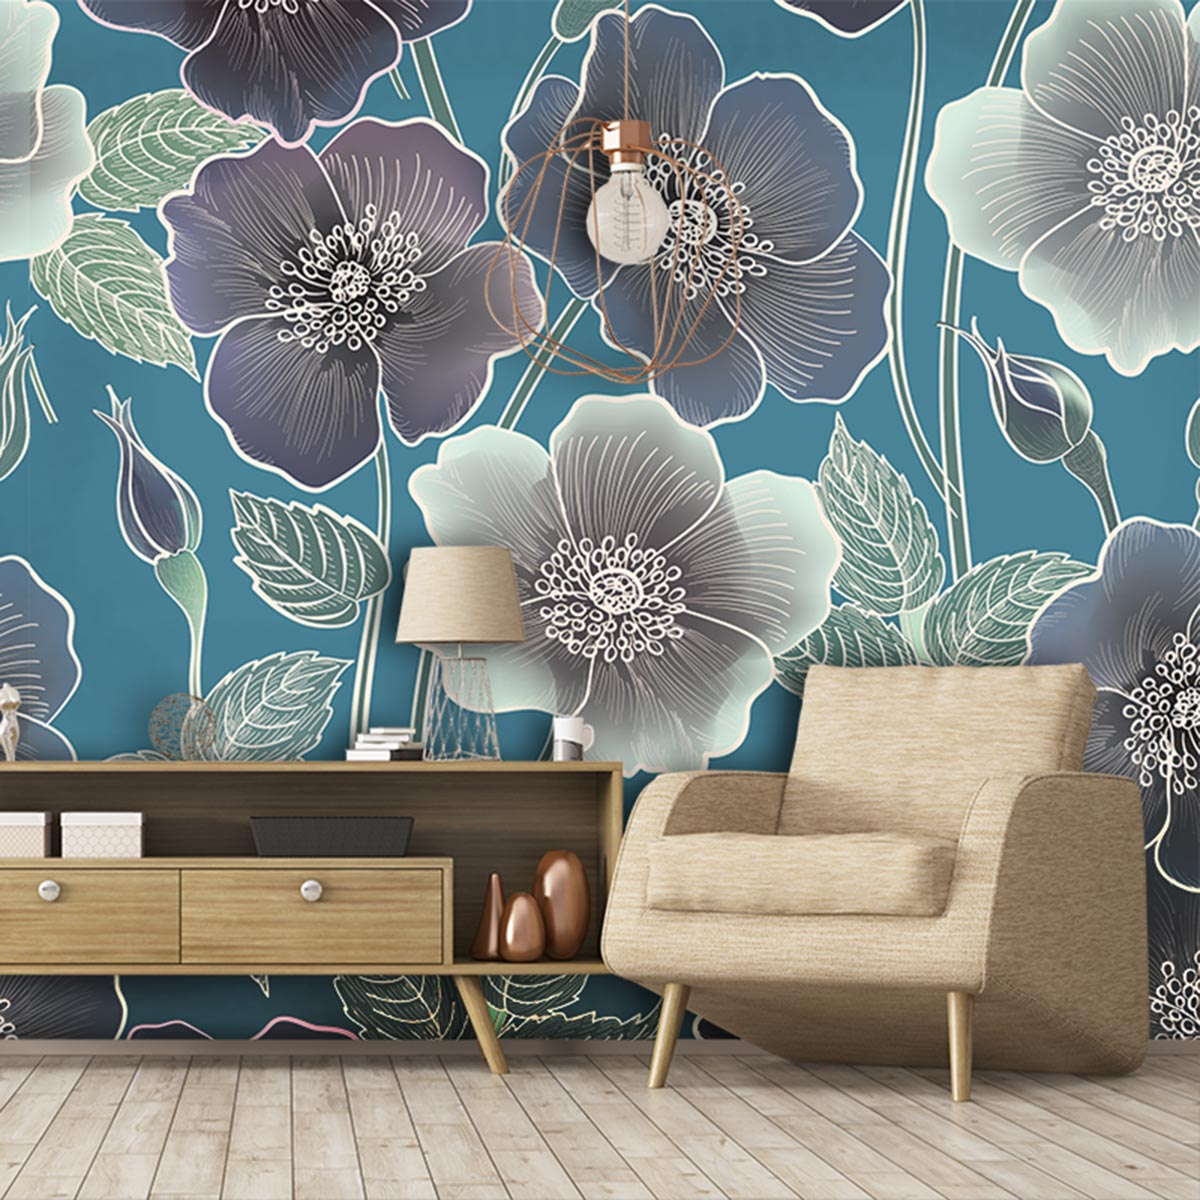 Ila floral design from Rose Quartz designs and available as a bespoke wall mural and more from Forthefloorandmore.com